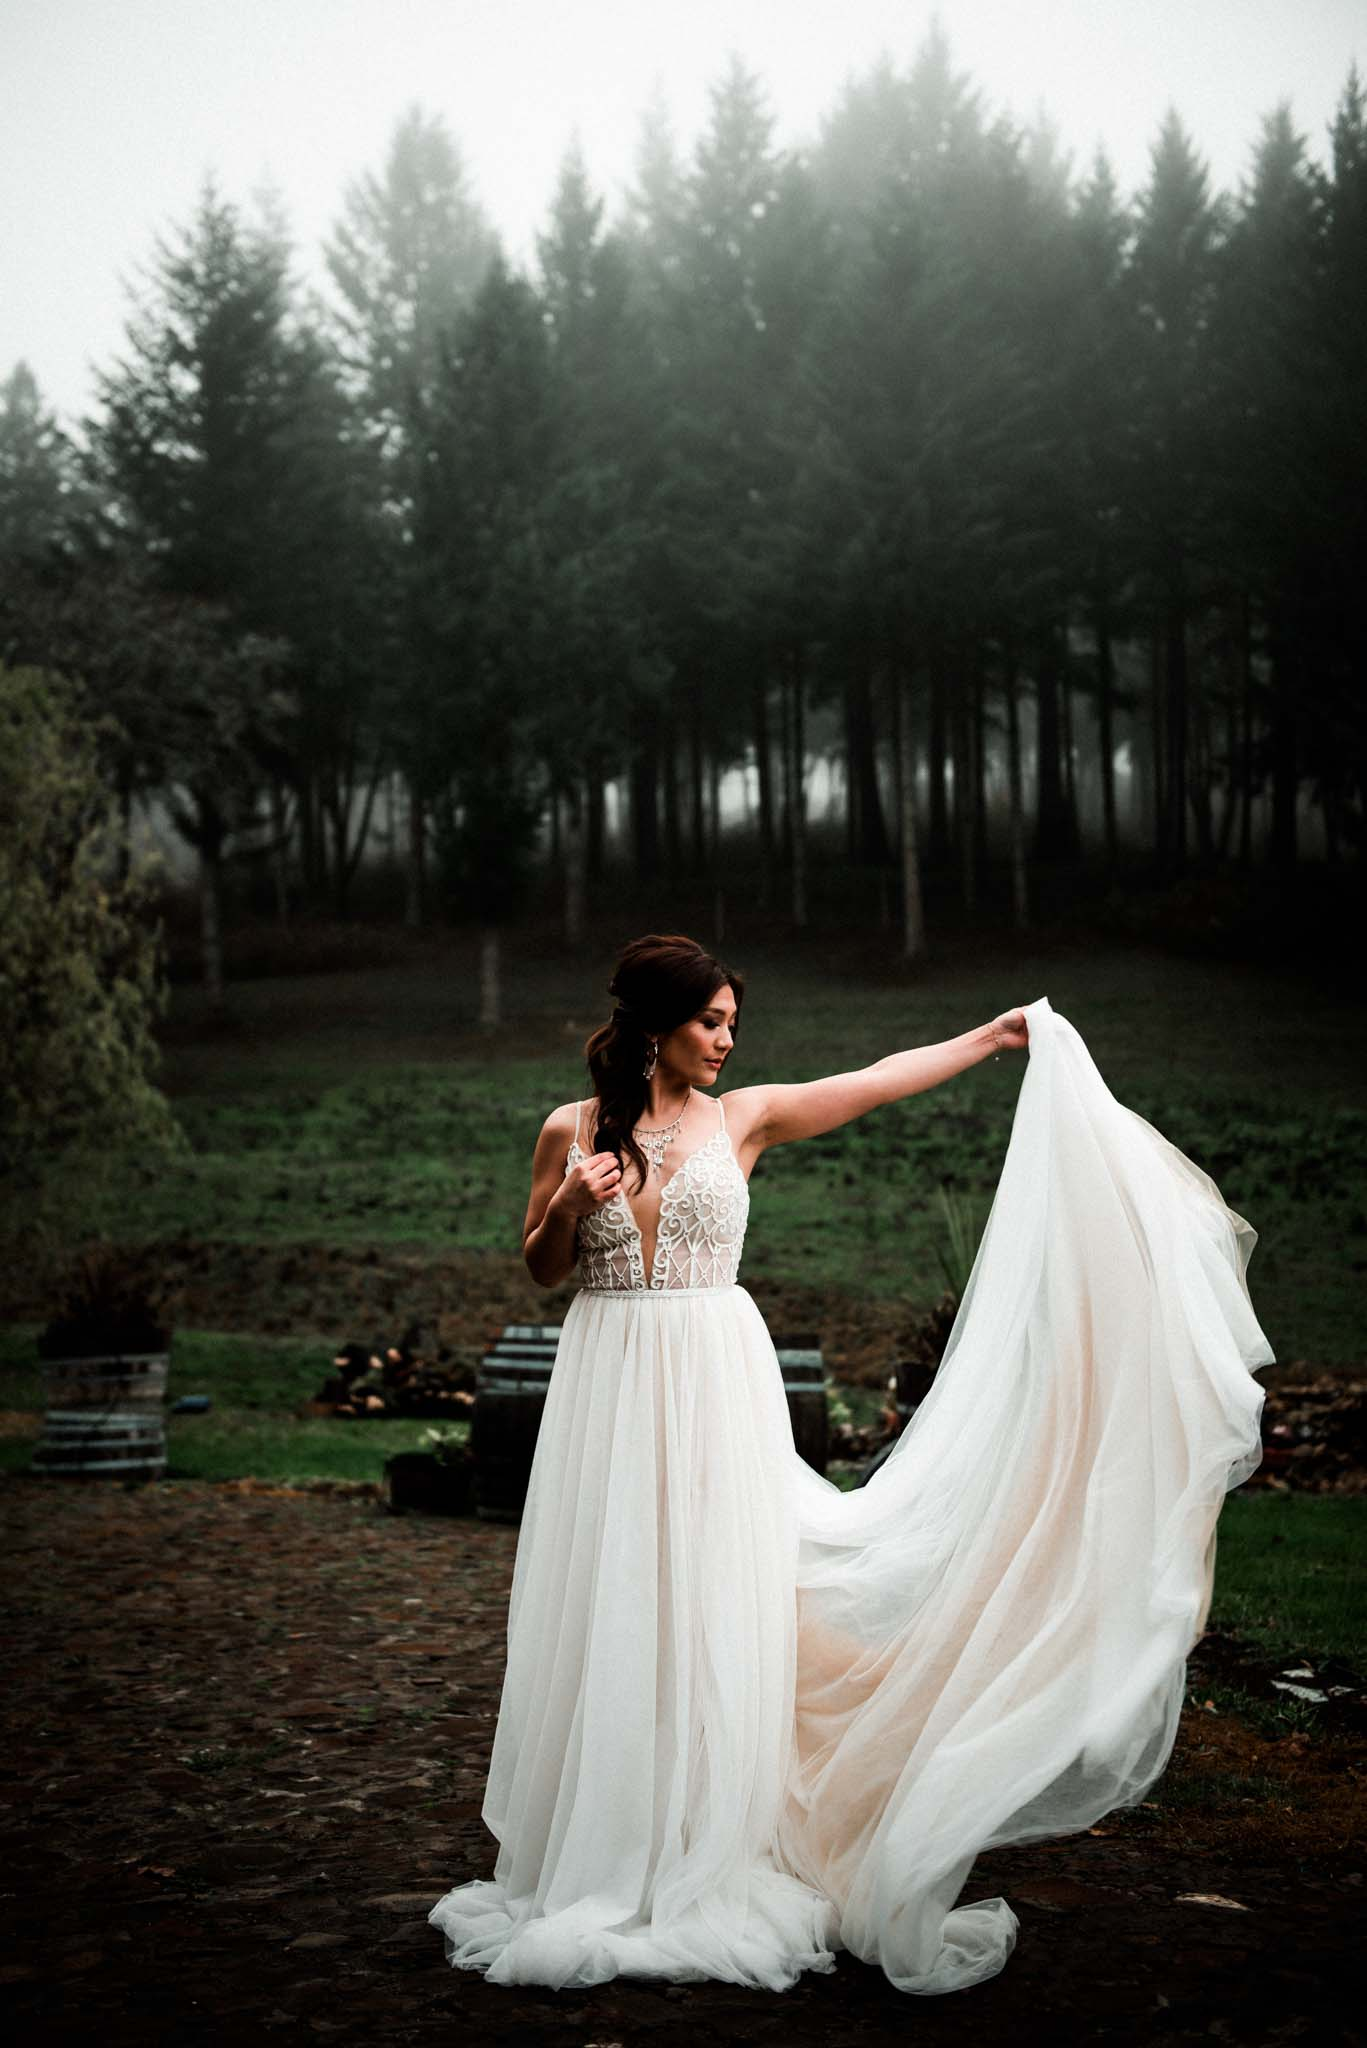 Bride portrait dancing in her gown outdoors during a foggy winter day at the Maysara Winery Oregon